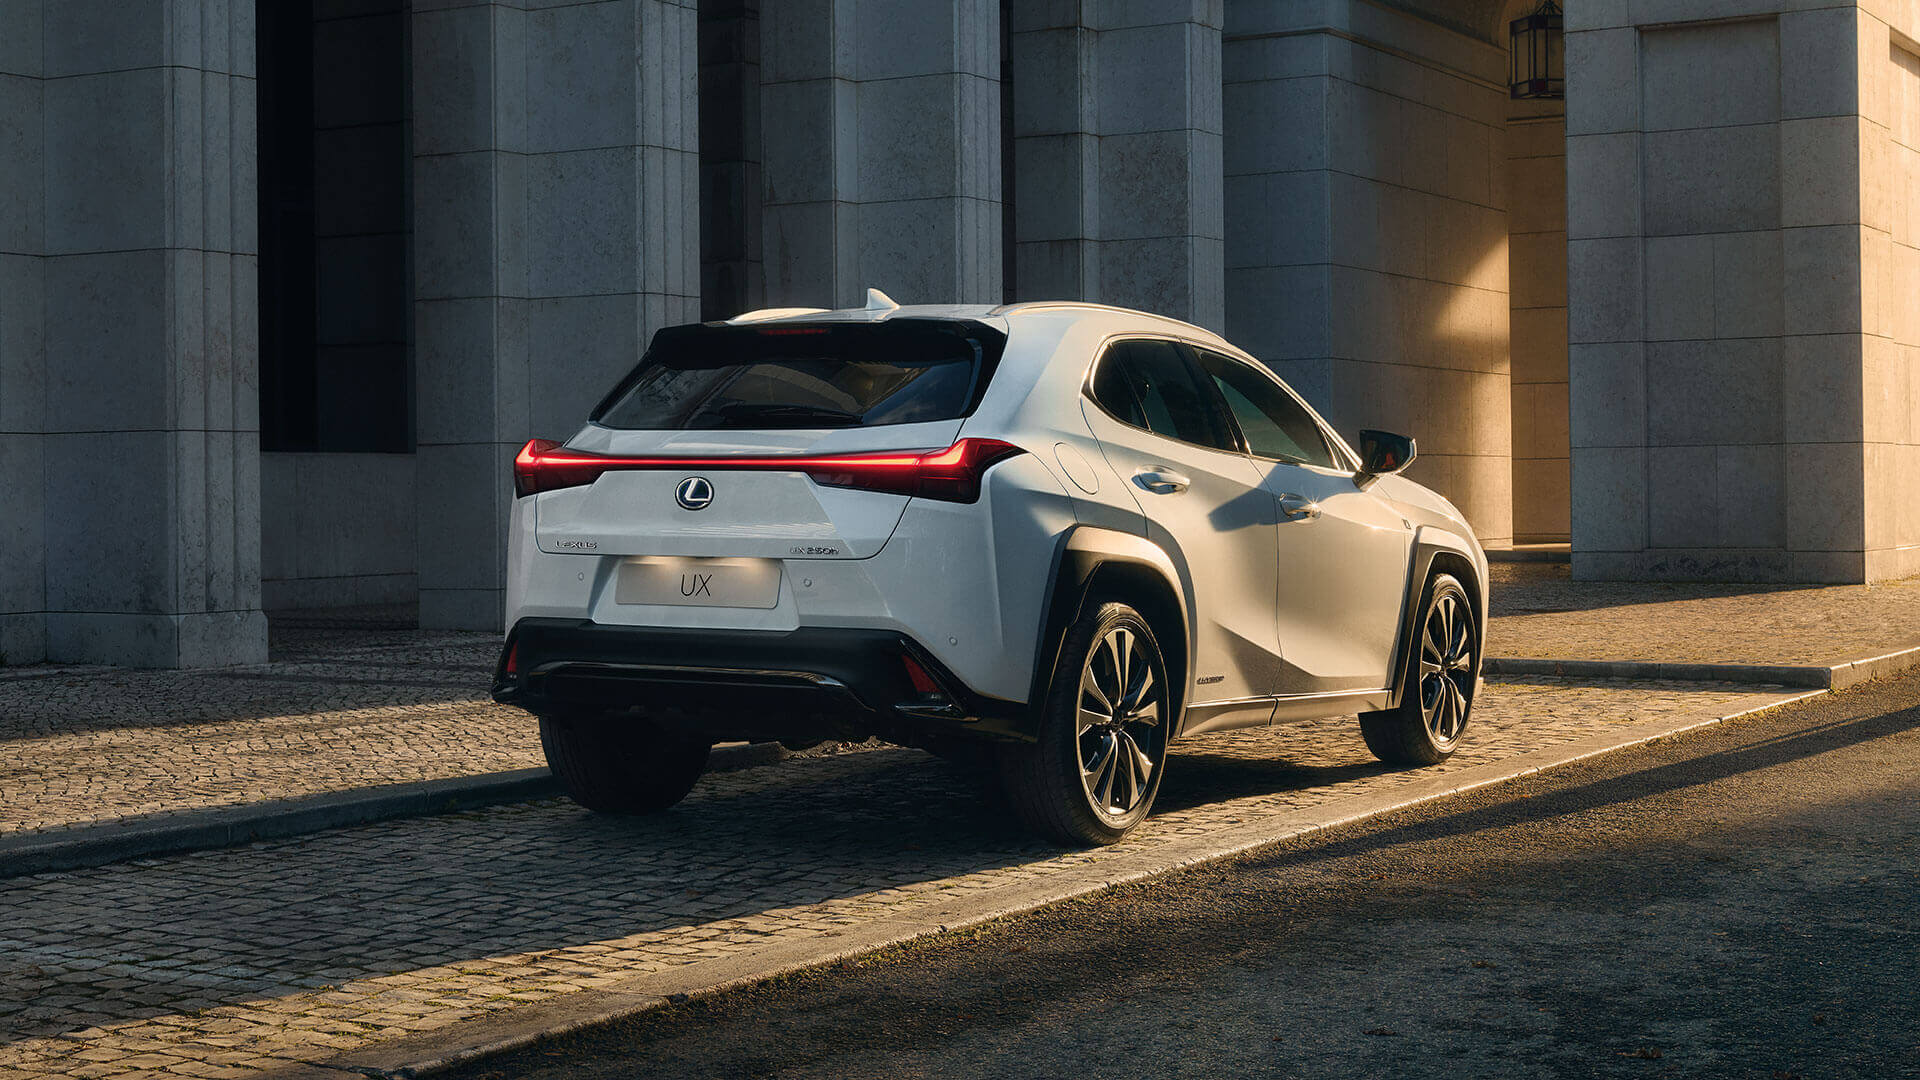 2019 lexus uk ux gallery exterior 03